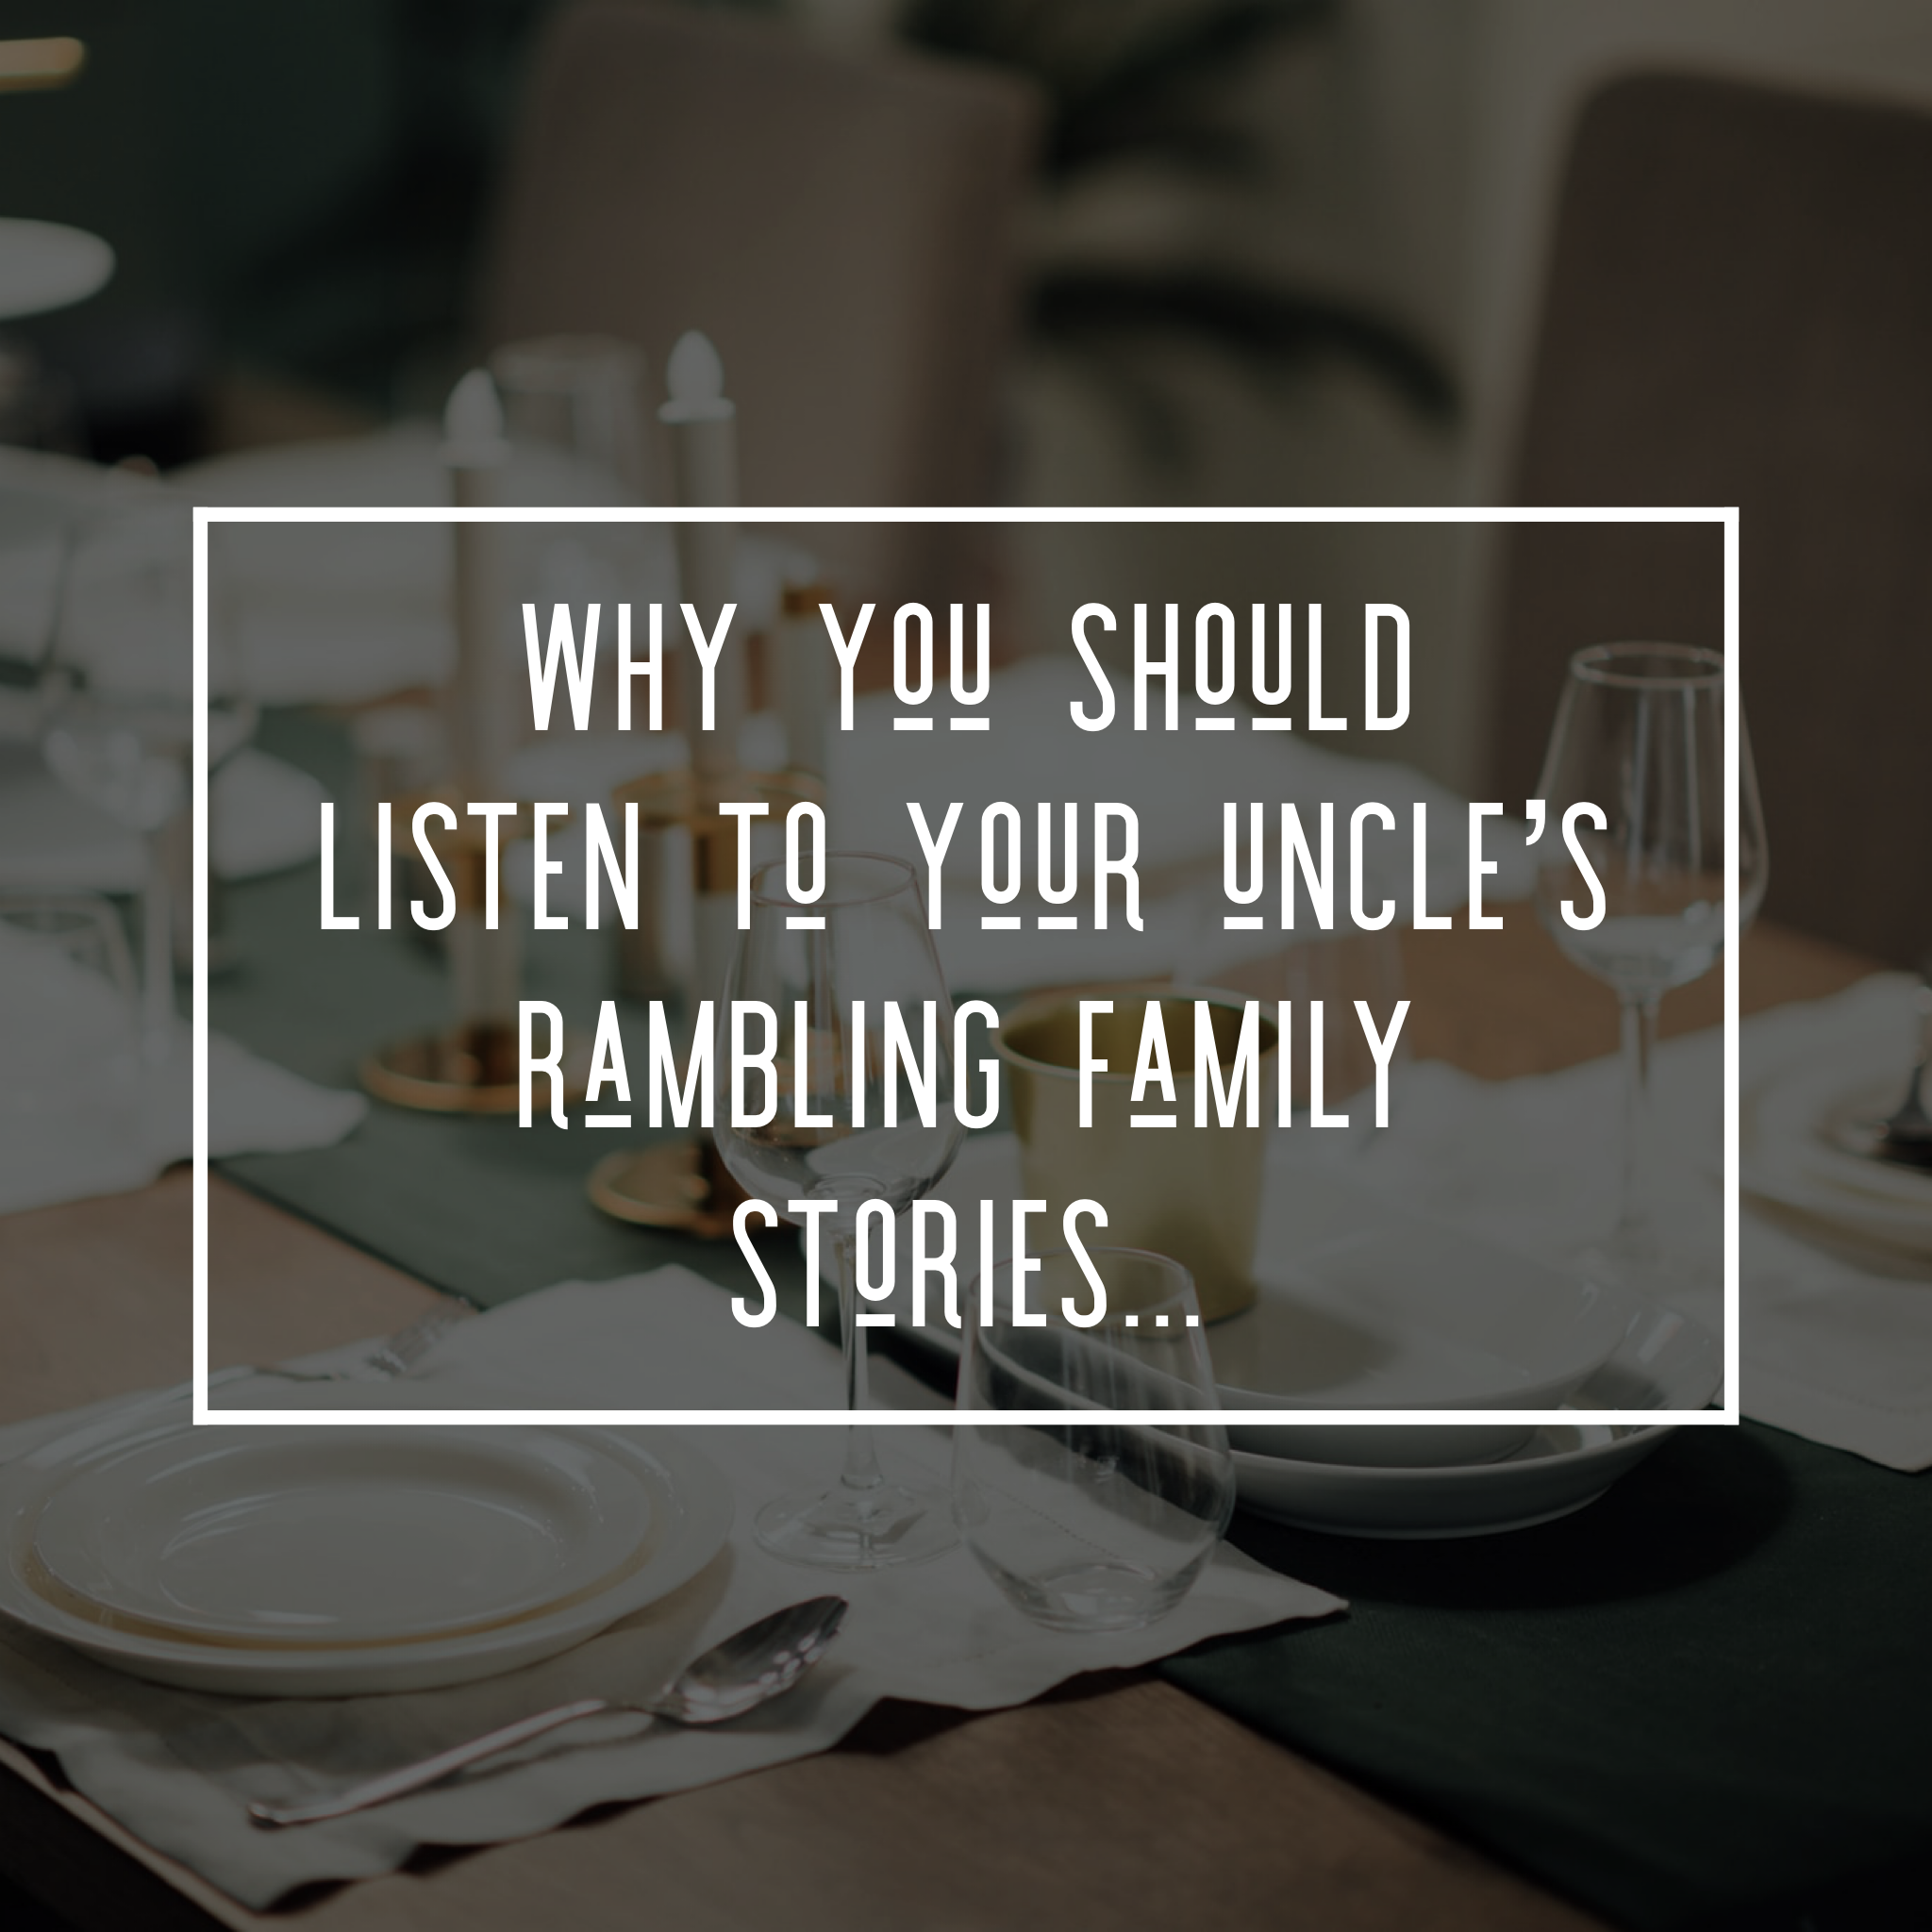 Why you should listen to your uncle's rambling family stories